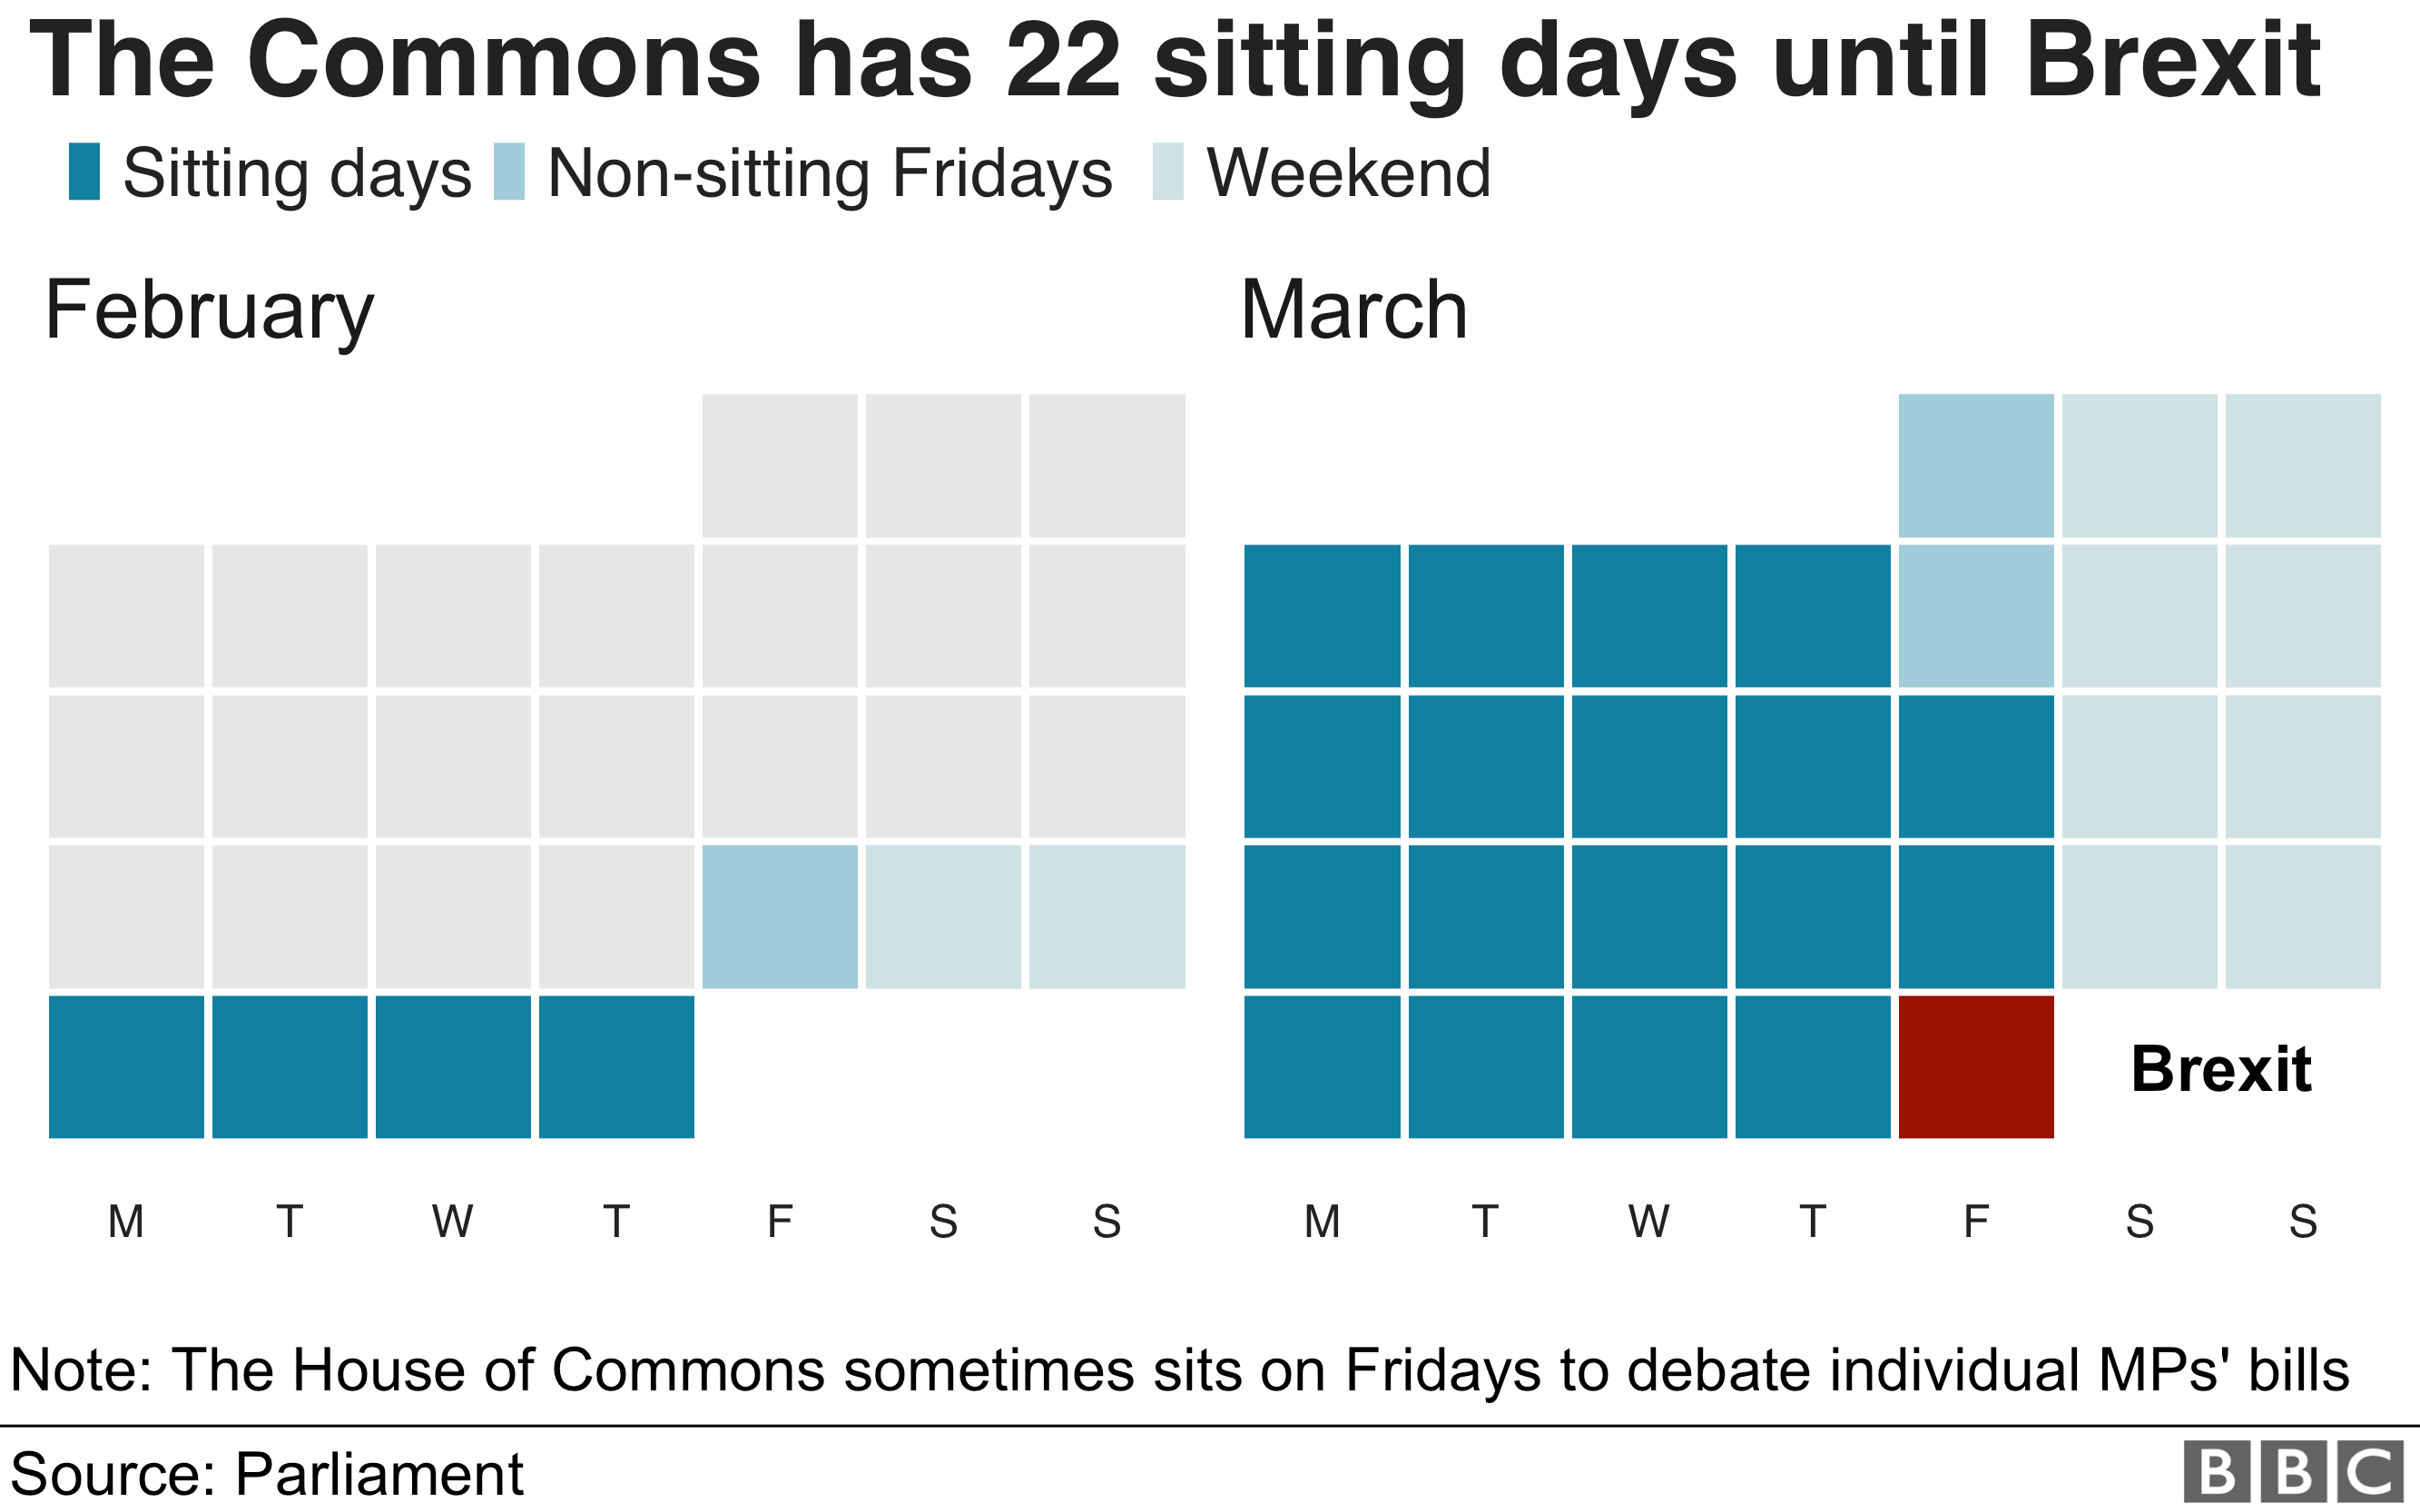 Number of sitting days graphic